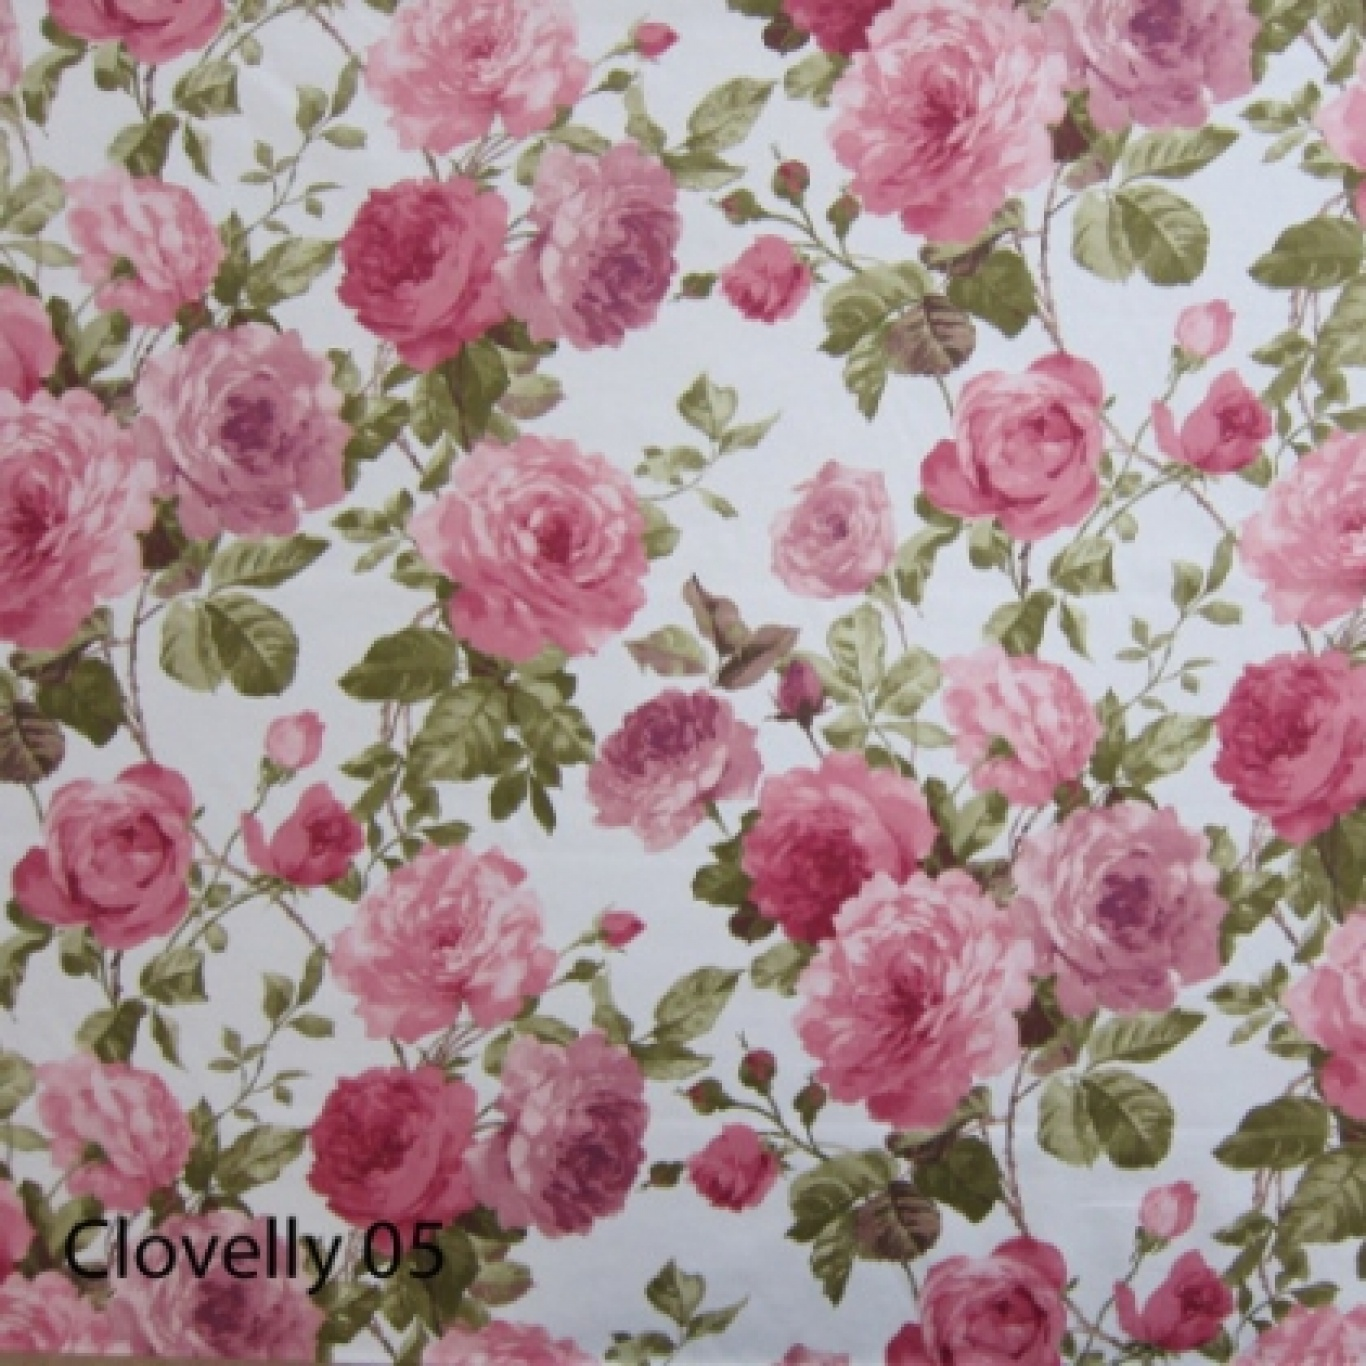 Image of Crowson Cloverlly Colour 5 Curtain Fabric